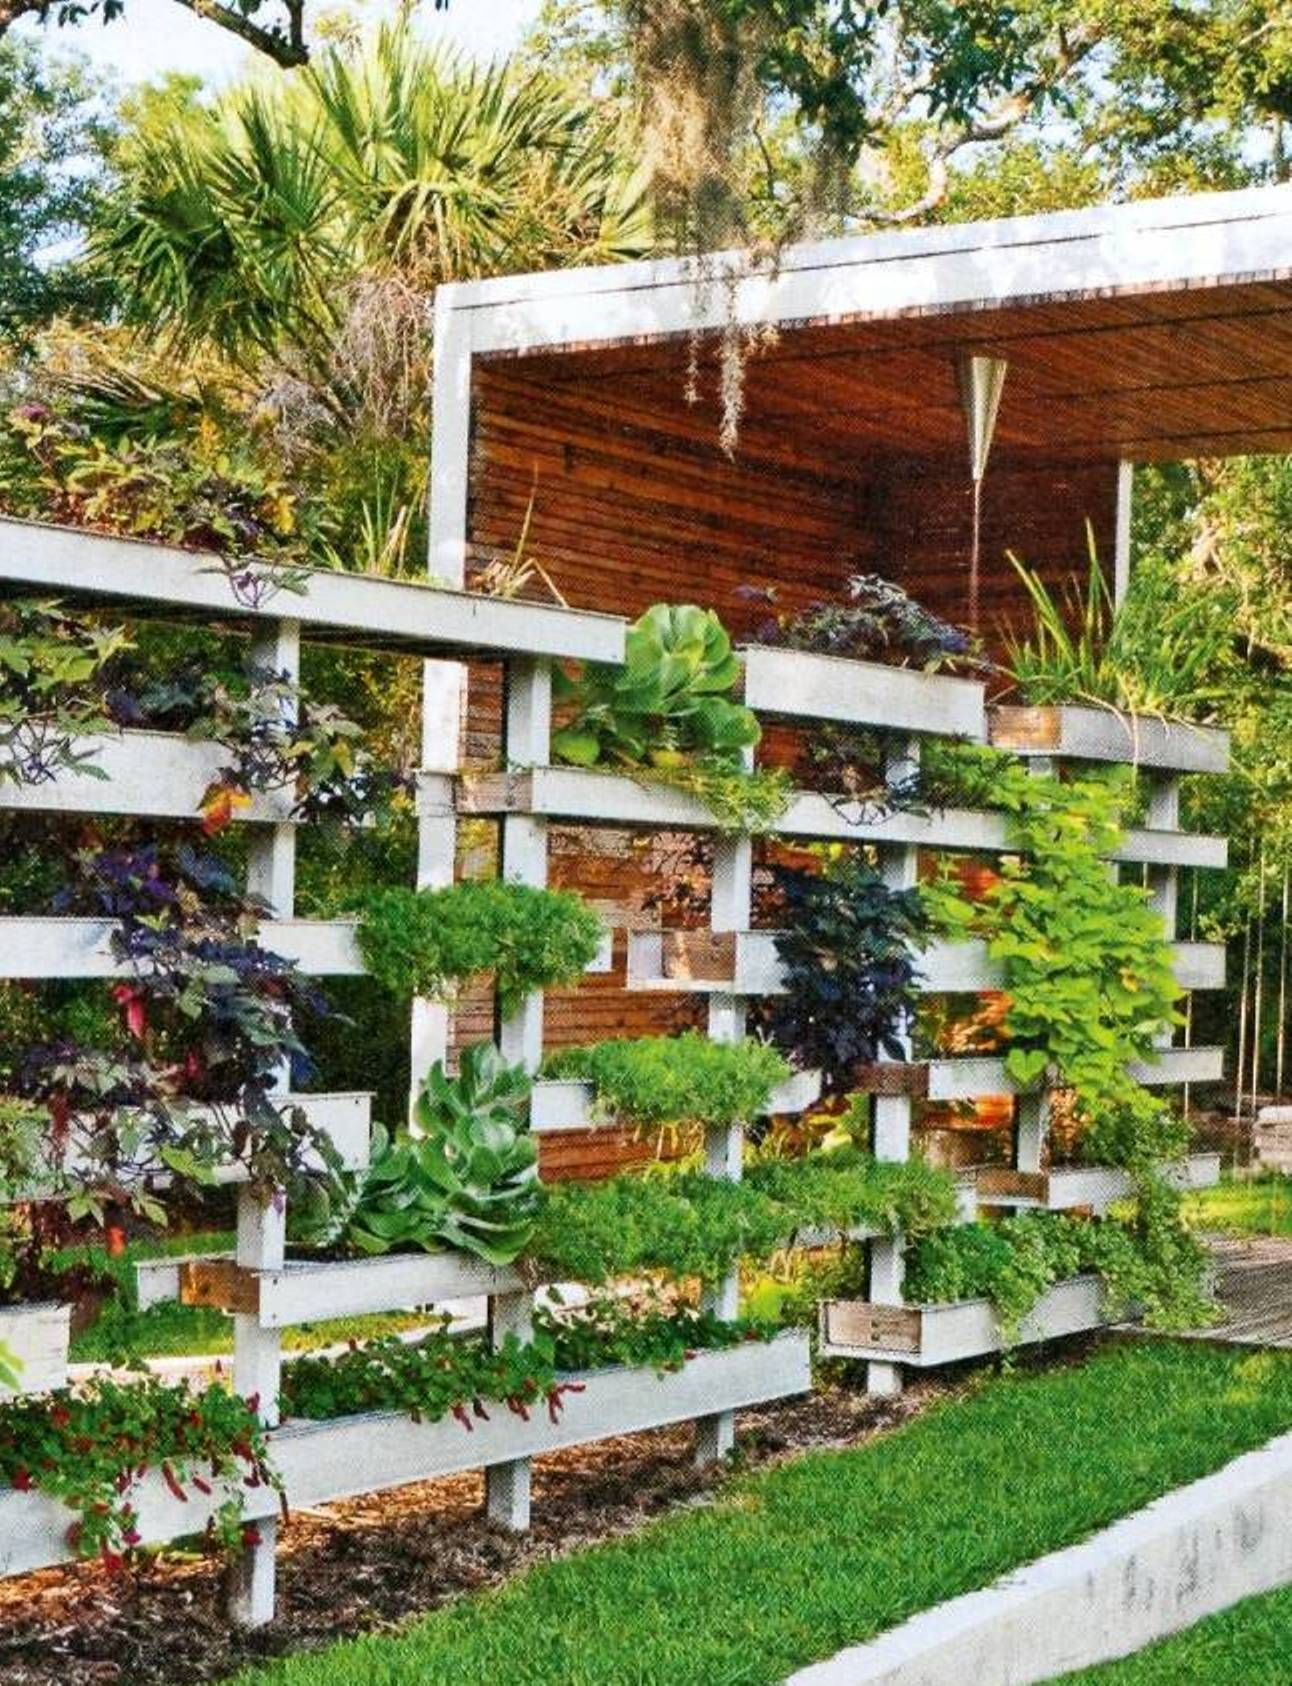 Garden small spaces google search garden pinterest for Ideas for a small vegetable garden design